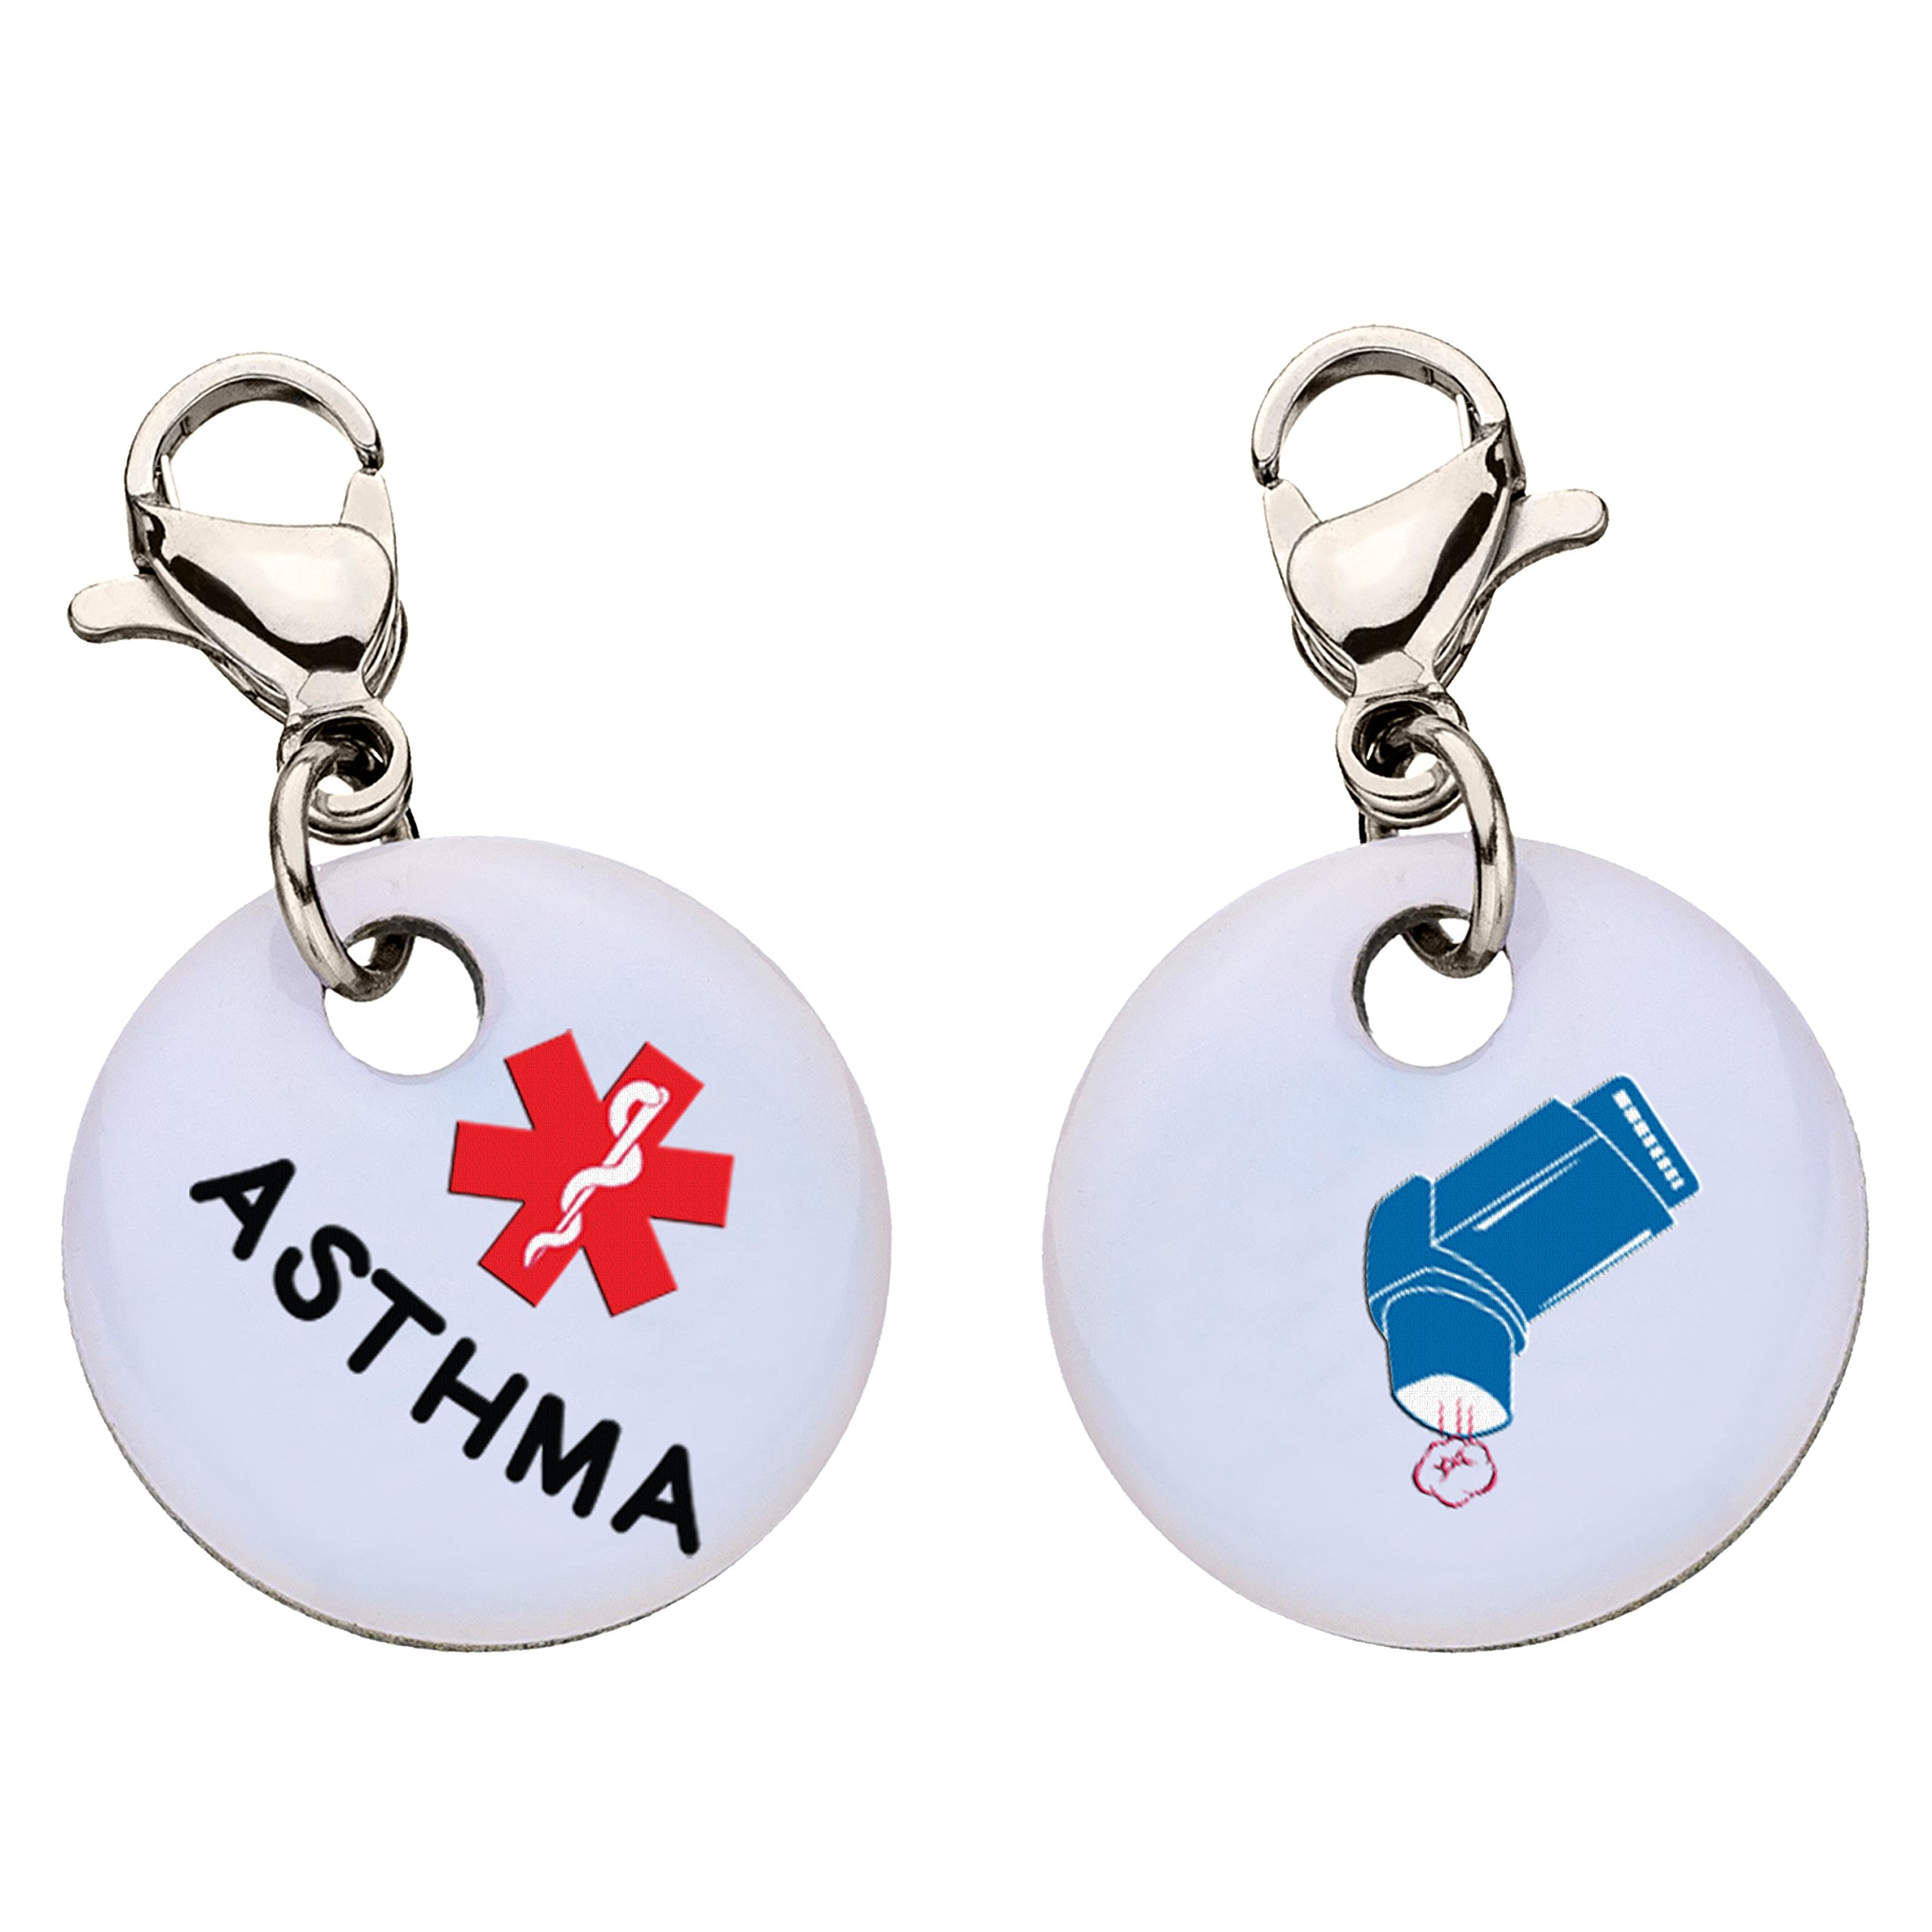 Asthma Snap-On Bracelet Charm-Parent (Stainless Steel) by My ID Square (Image #1)